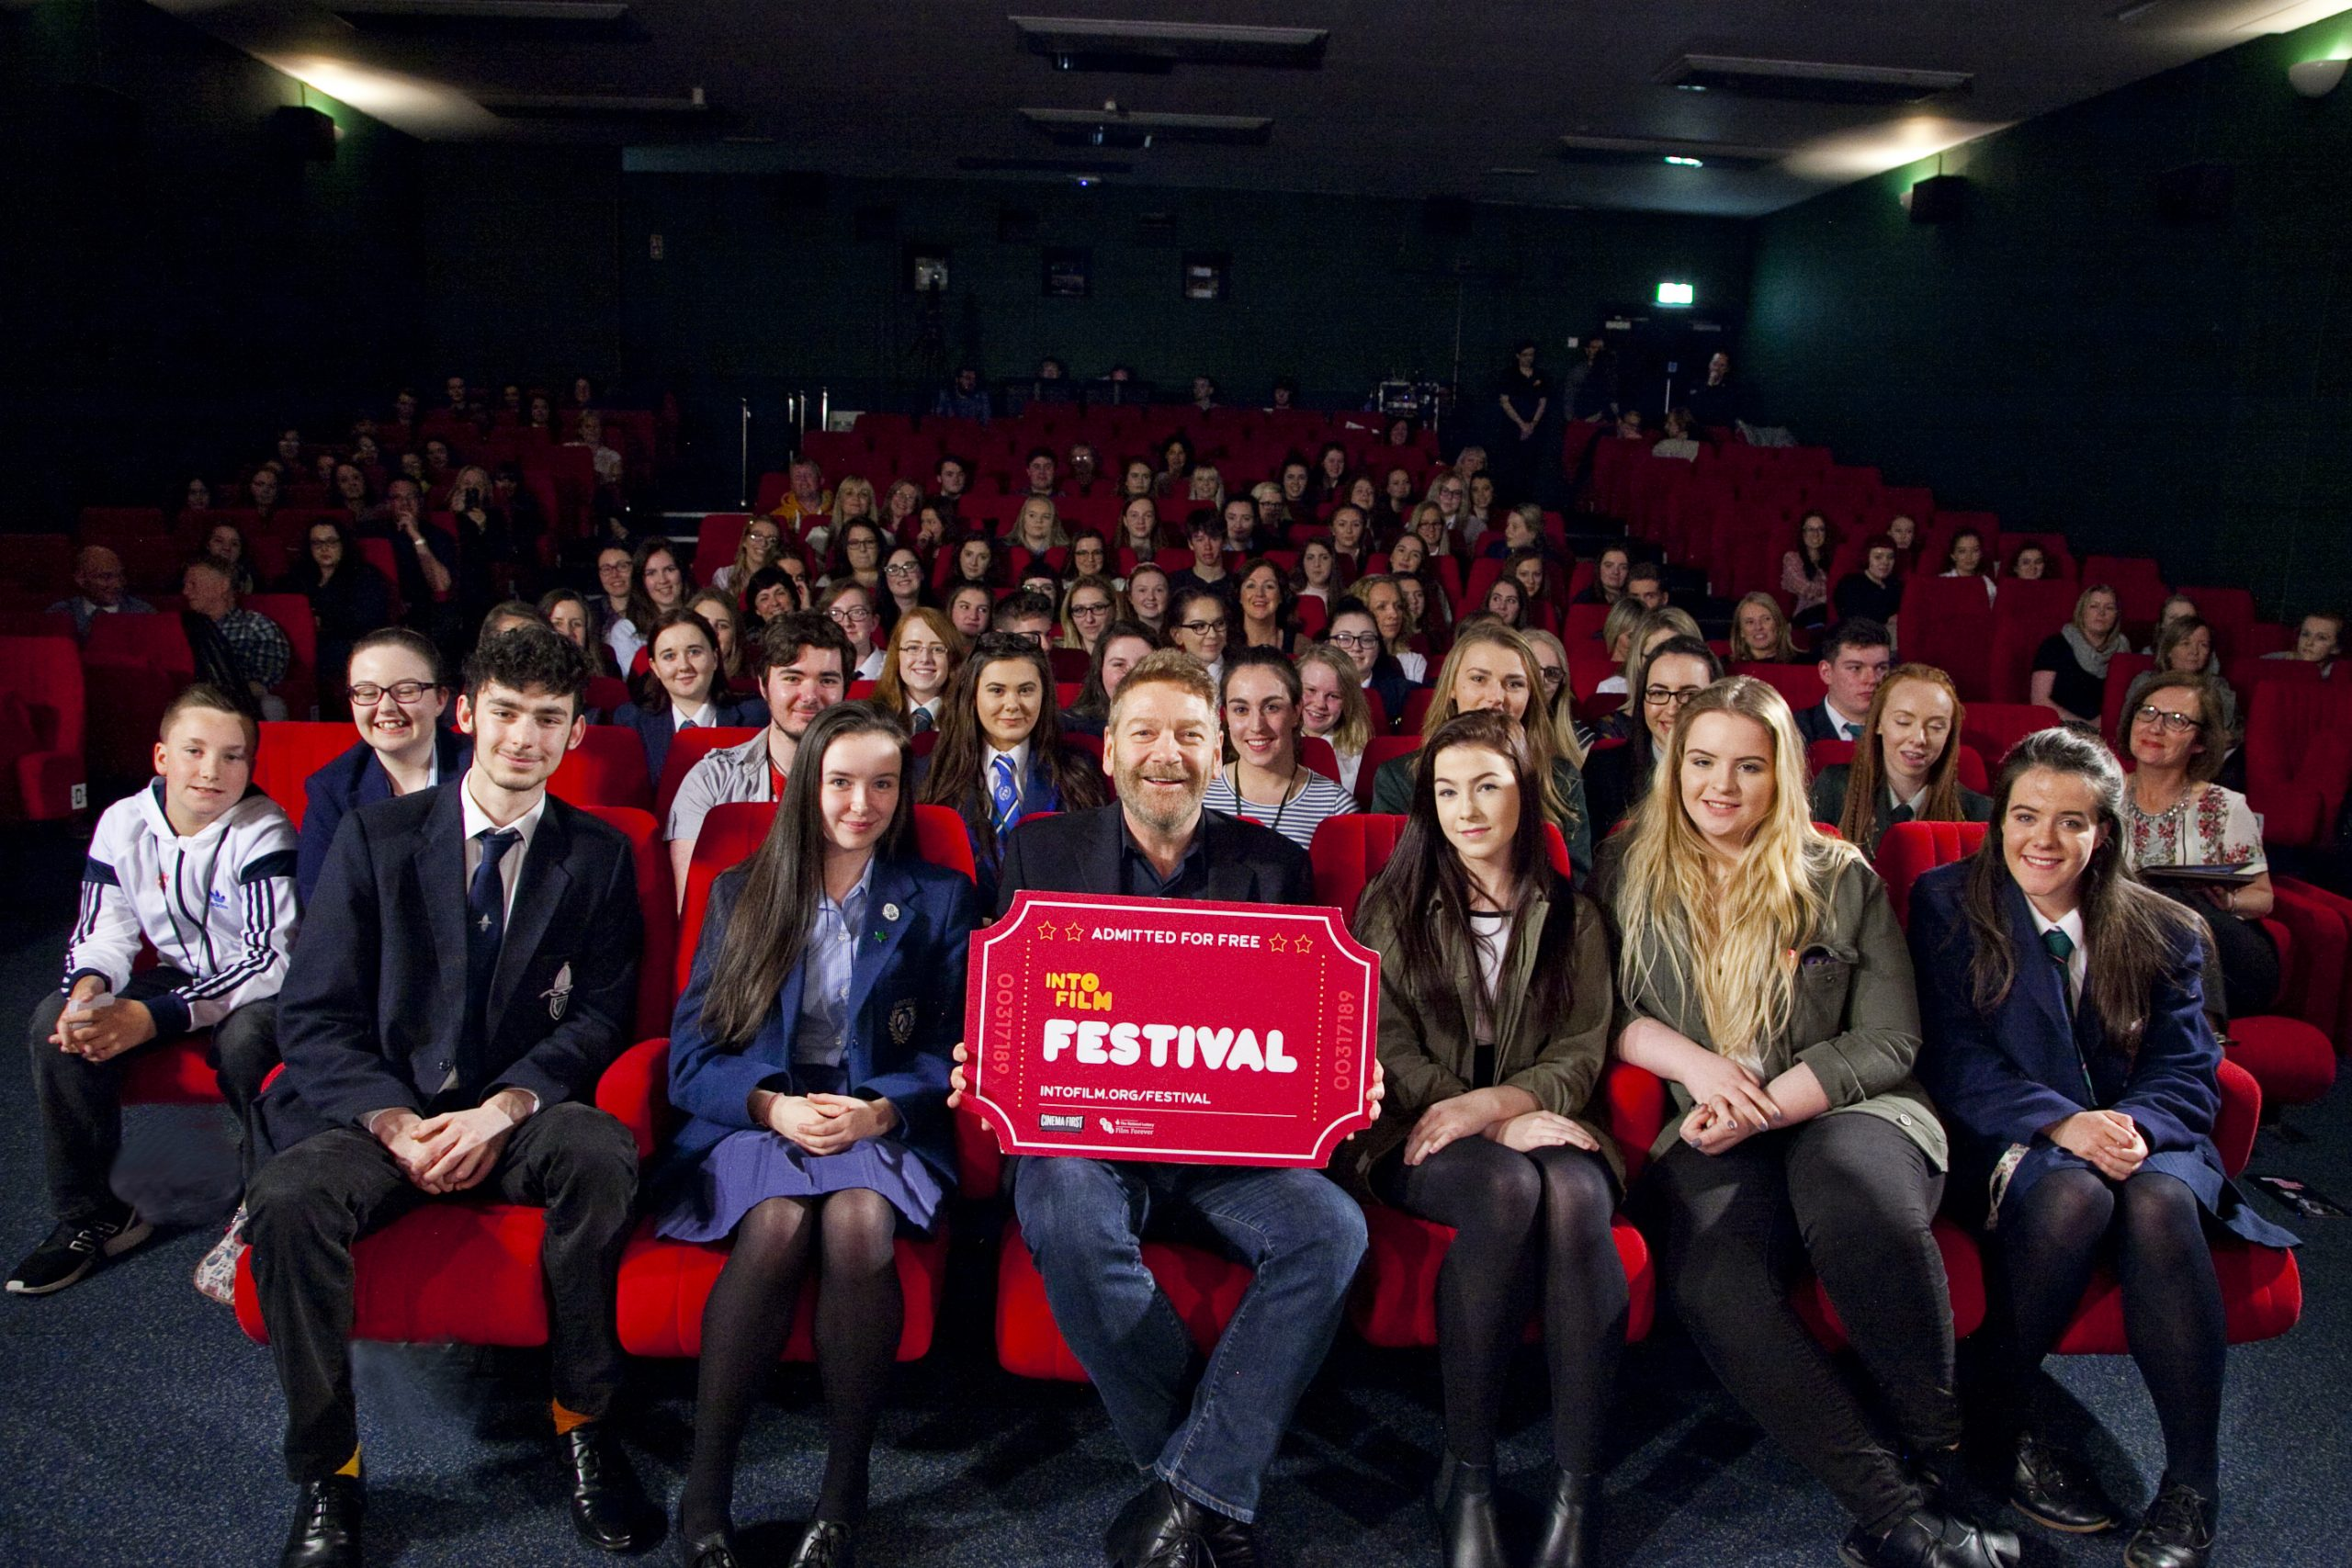 Sir Ken's favourite childhood movie to be screened during youth film festival